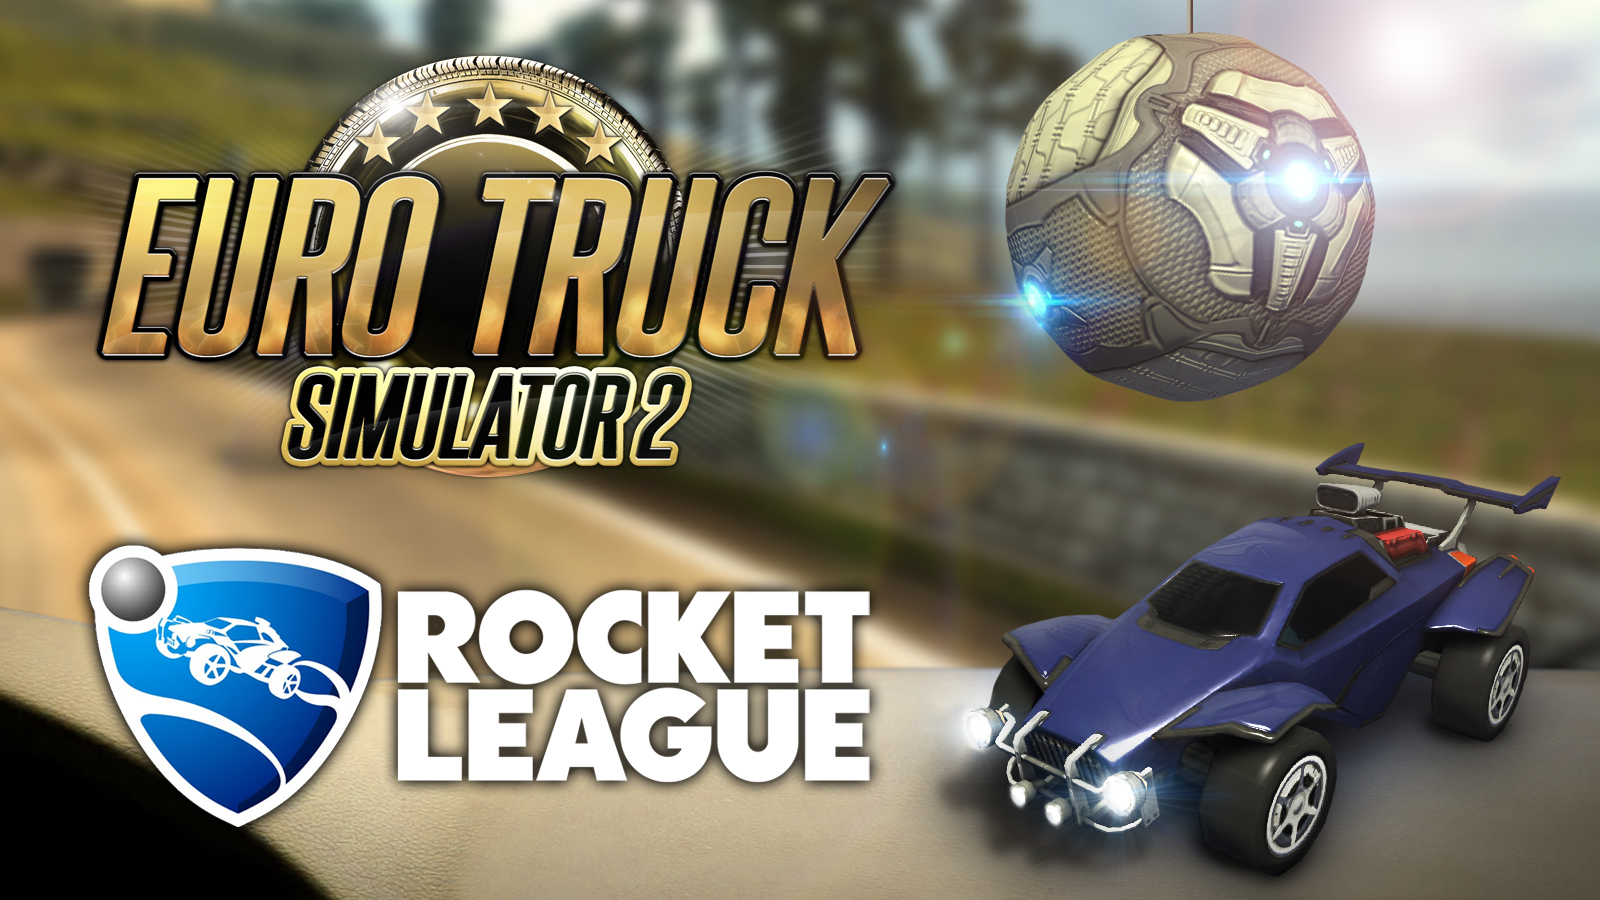 A touch of Rocket League in Euro Truck Simulator 2